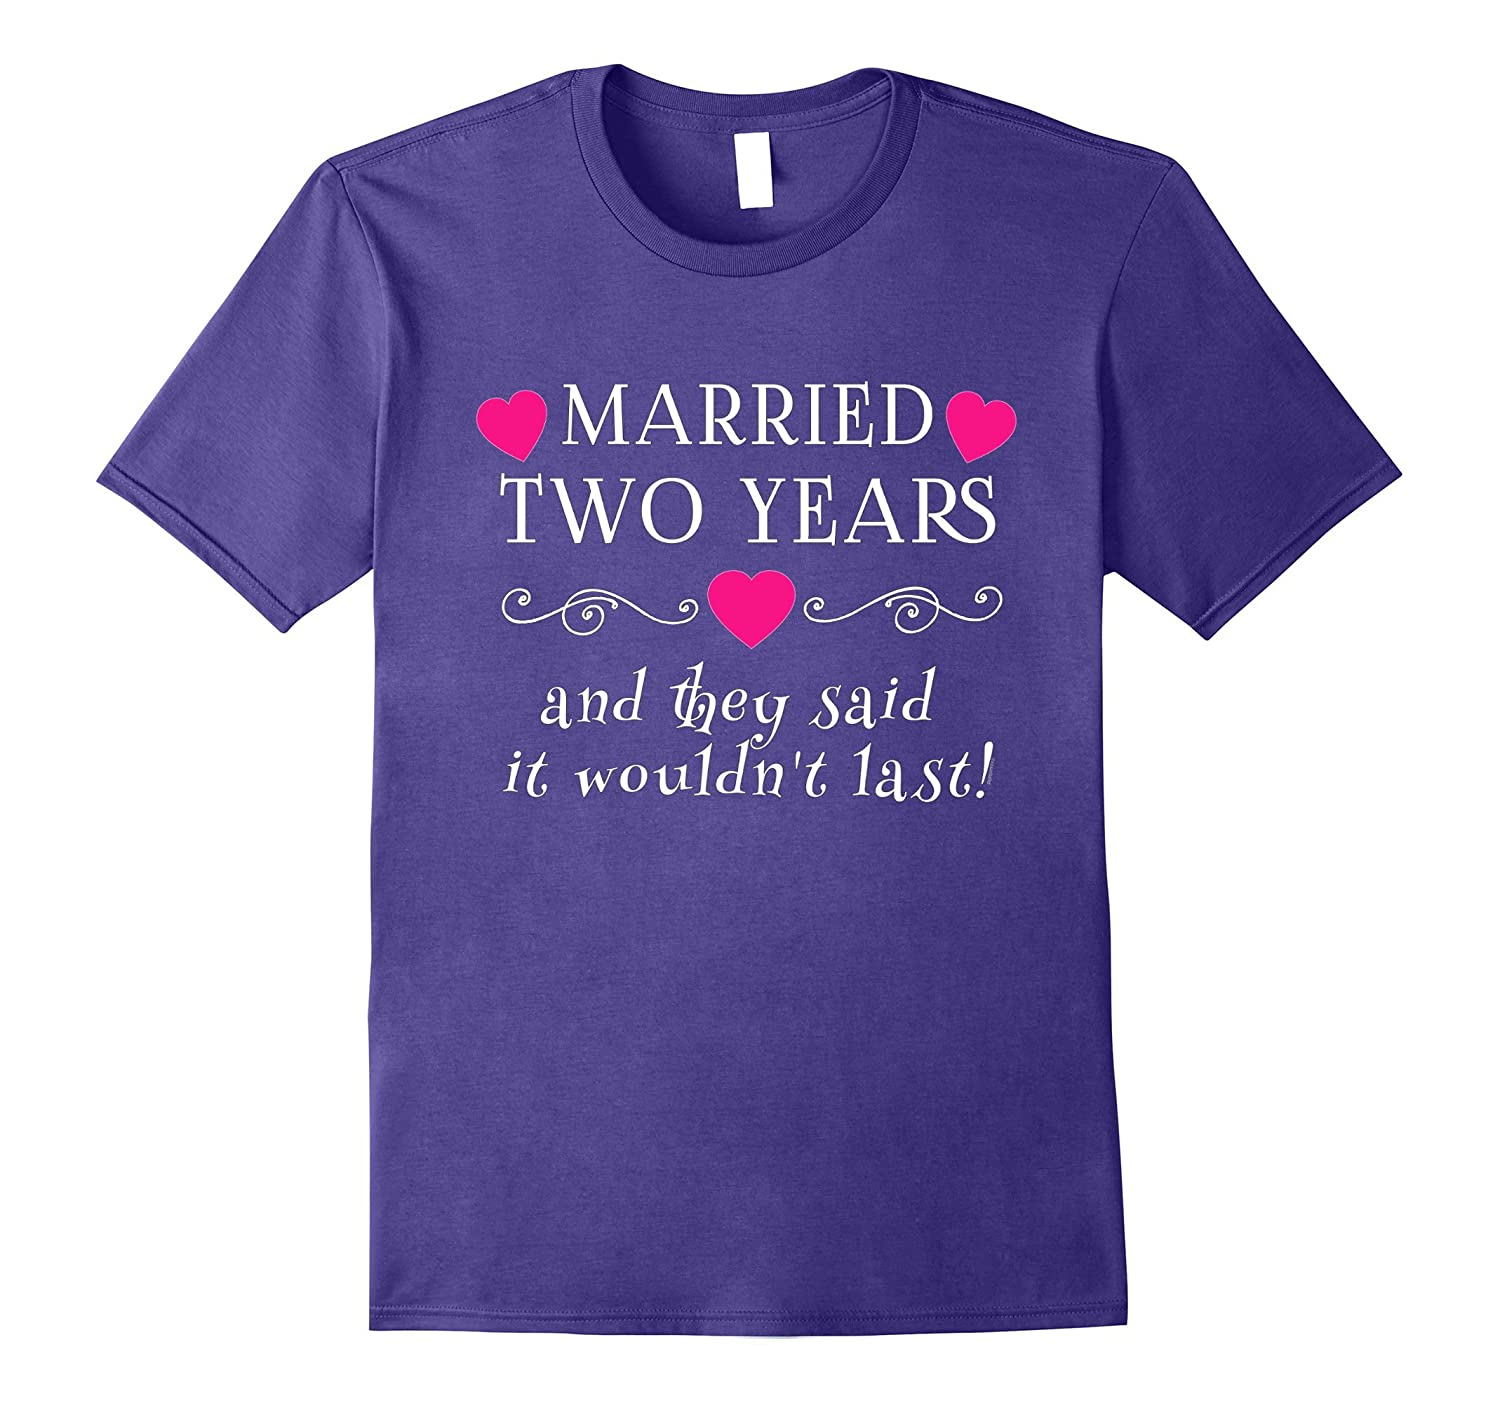 2 YEAR ANNIVERSARY T-shirt by Scarebaby-CL